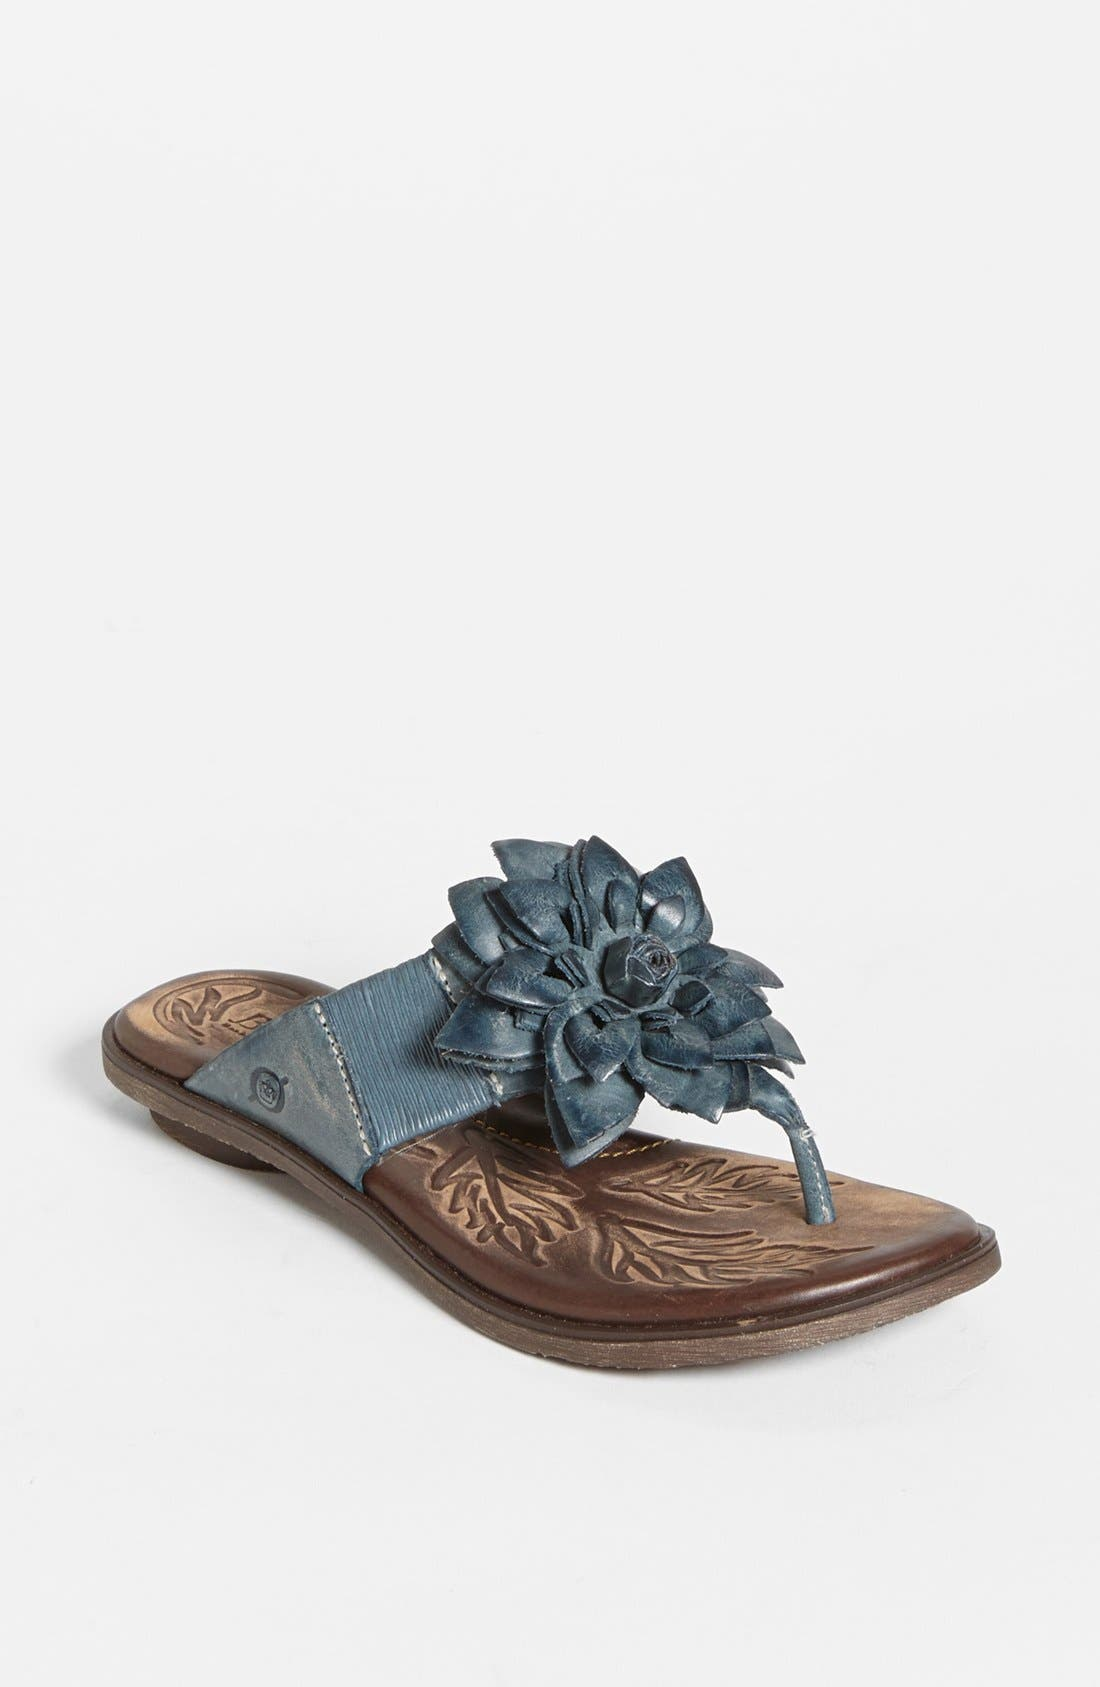 Main Image - Børn 'Astrid' Sandal (Special Purchase)